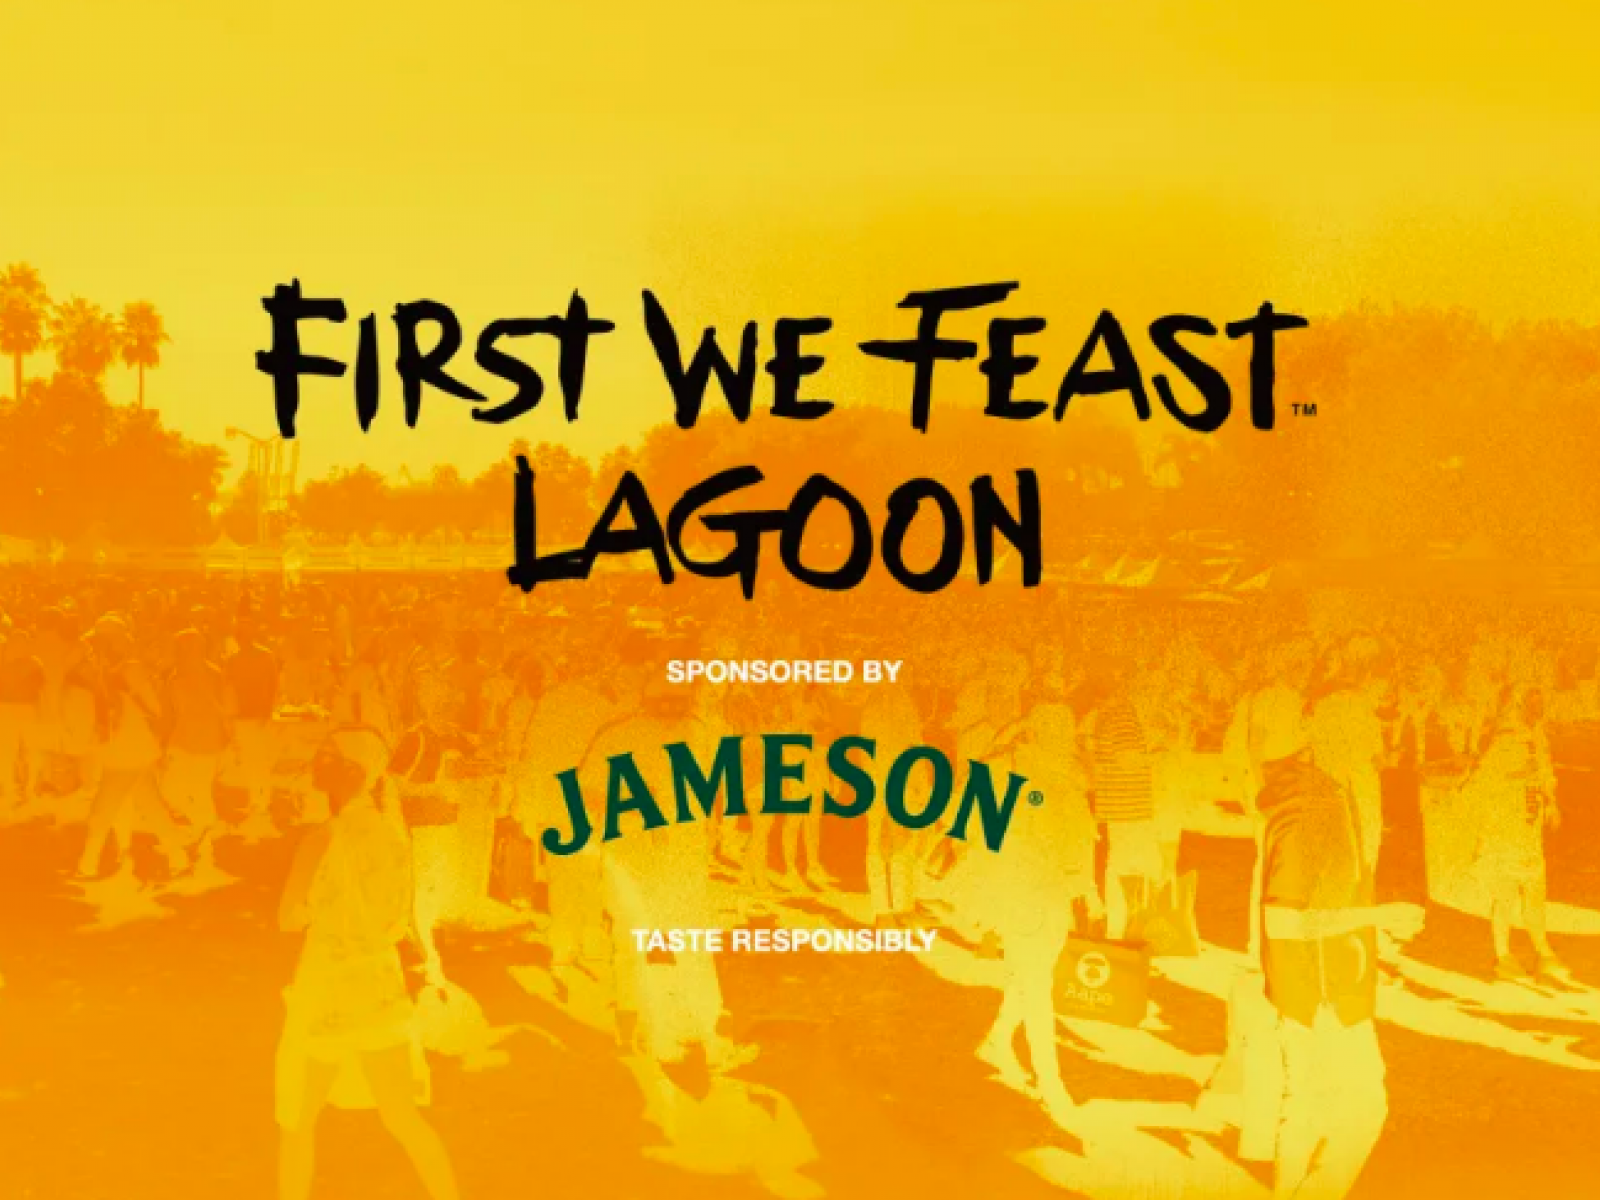 Main image for event titled ComplexCon's 'First We Feast Lagoon'